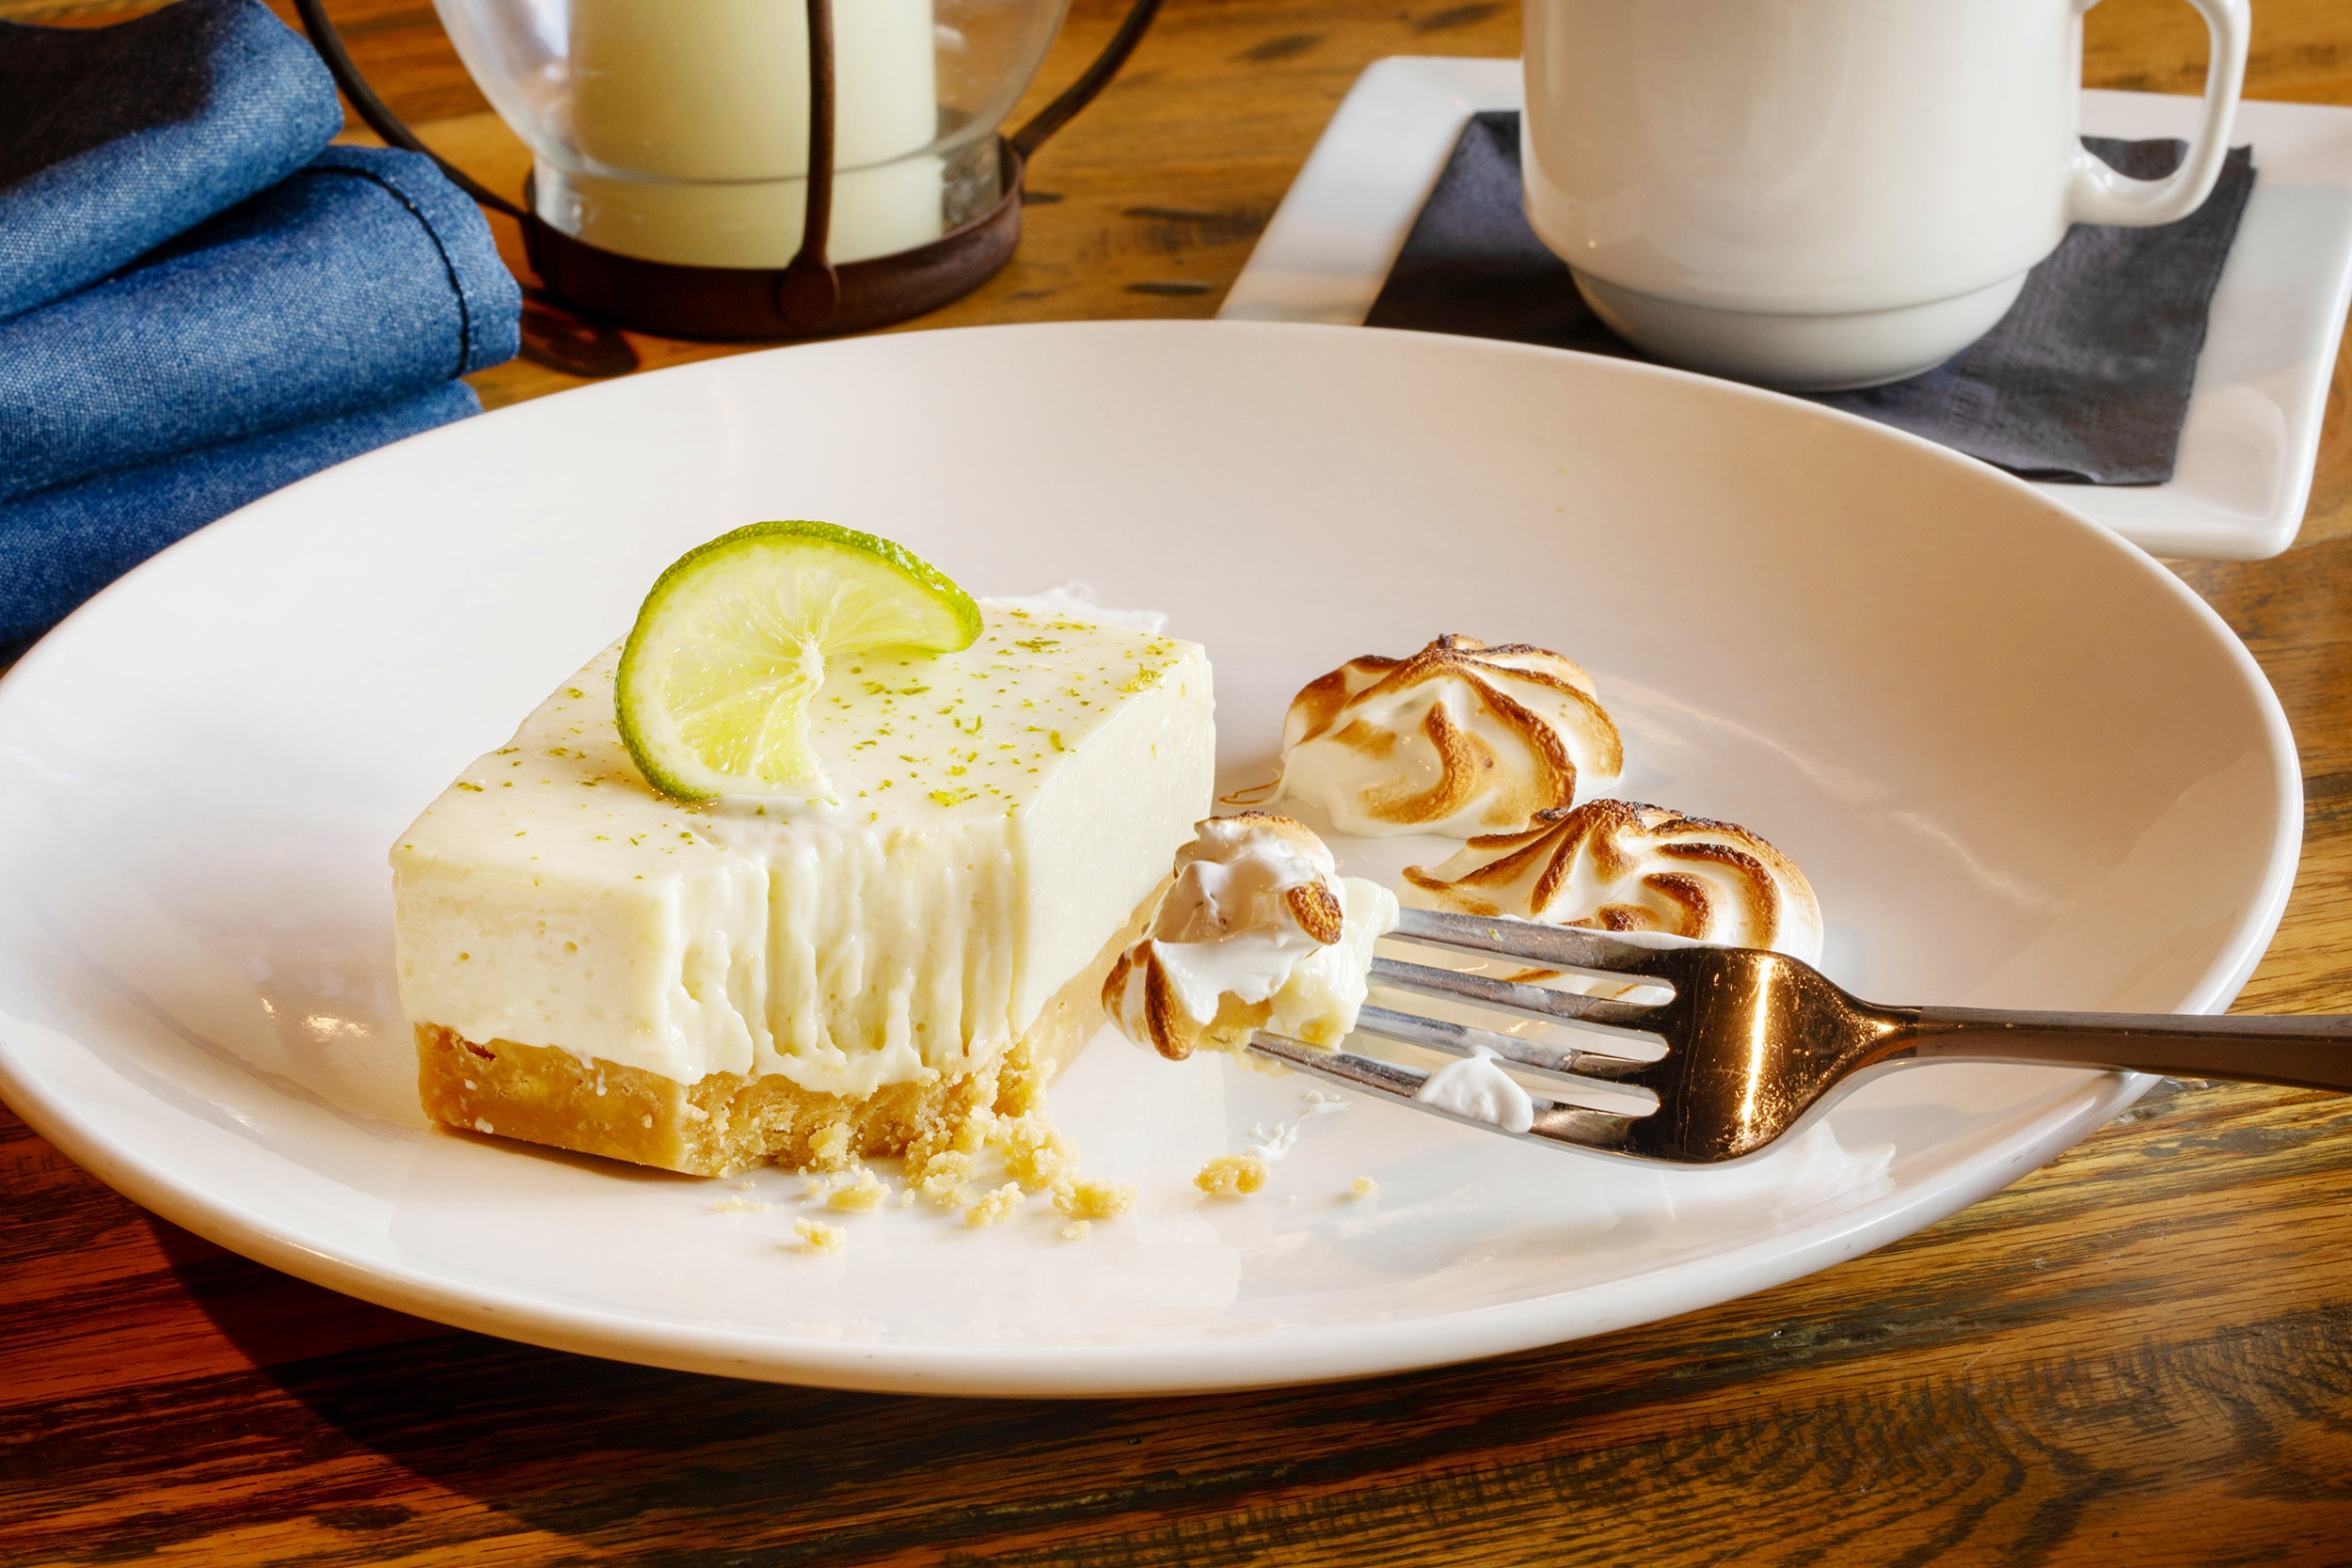 Key+West+Key+Lime+Pie-+Traditional+Key+Lime+Pie%2C+Nellie+%26+Joe%E2%80%99s+Key+Lime+Juice%2C+Graham+Cracker+Crust%2C+Toasted+Marshmallow+Whip-30.jpg